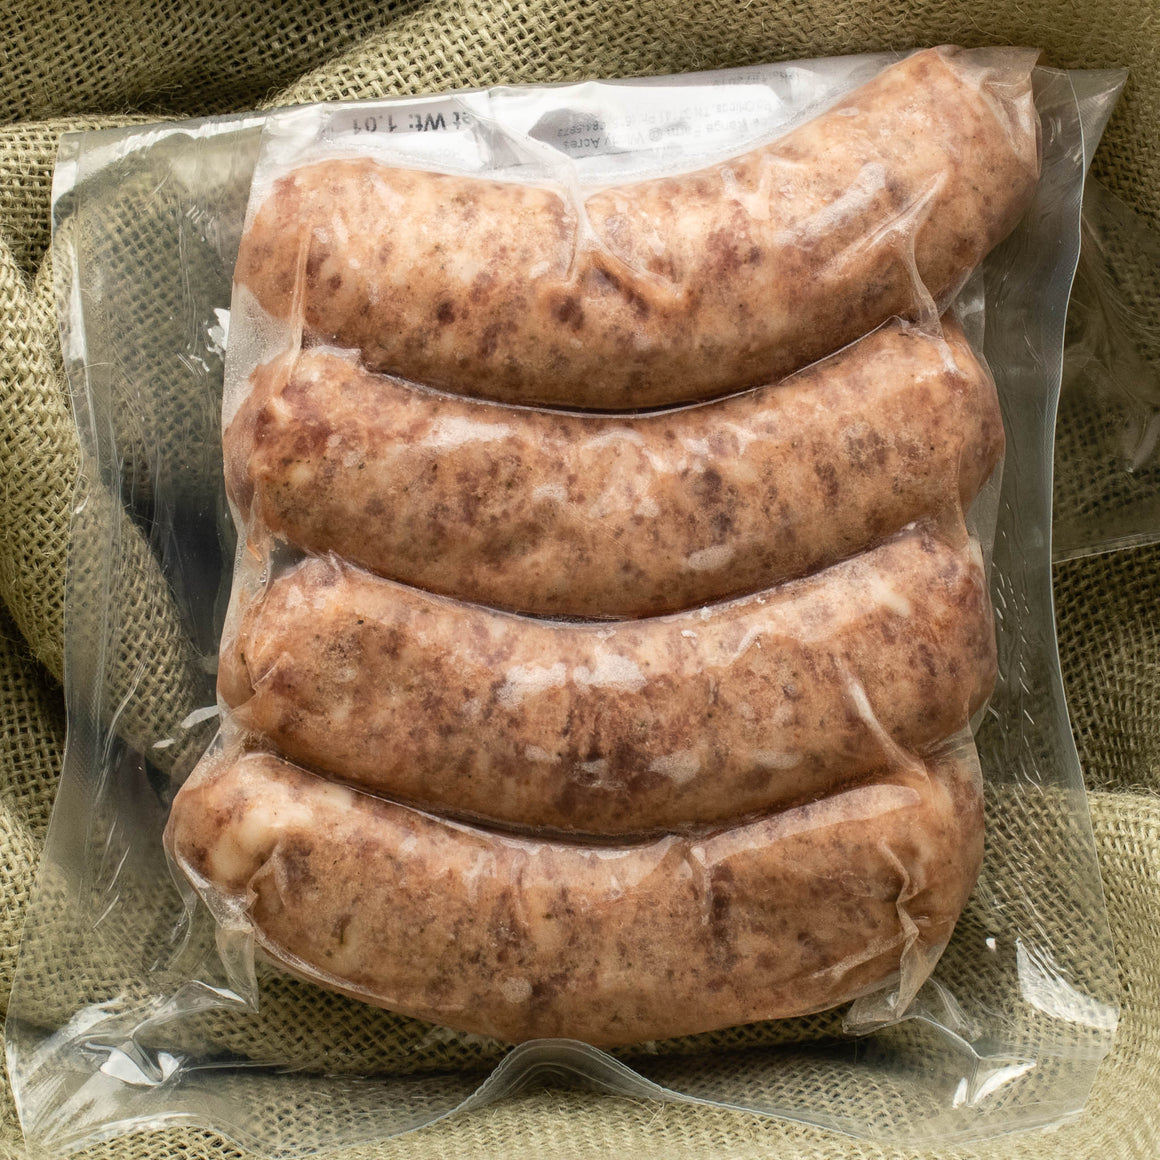 Bratwurst - Organically Fed Heritage Pork